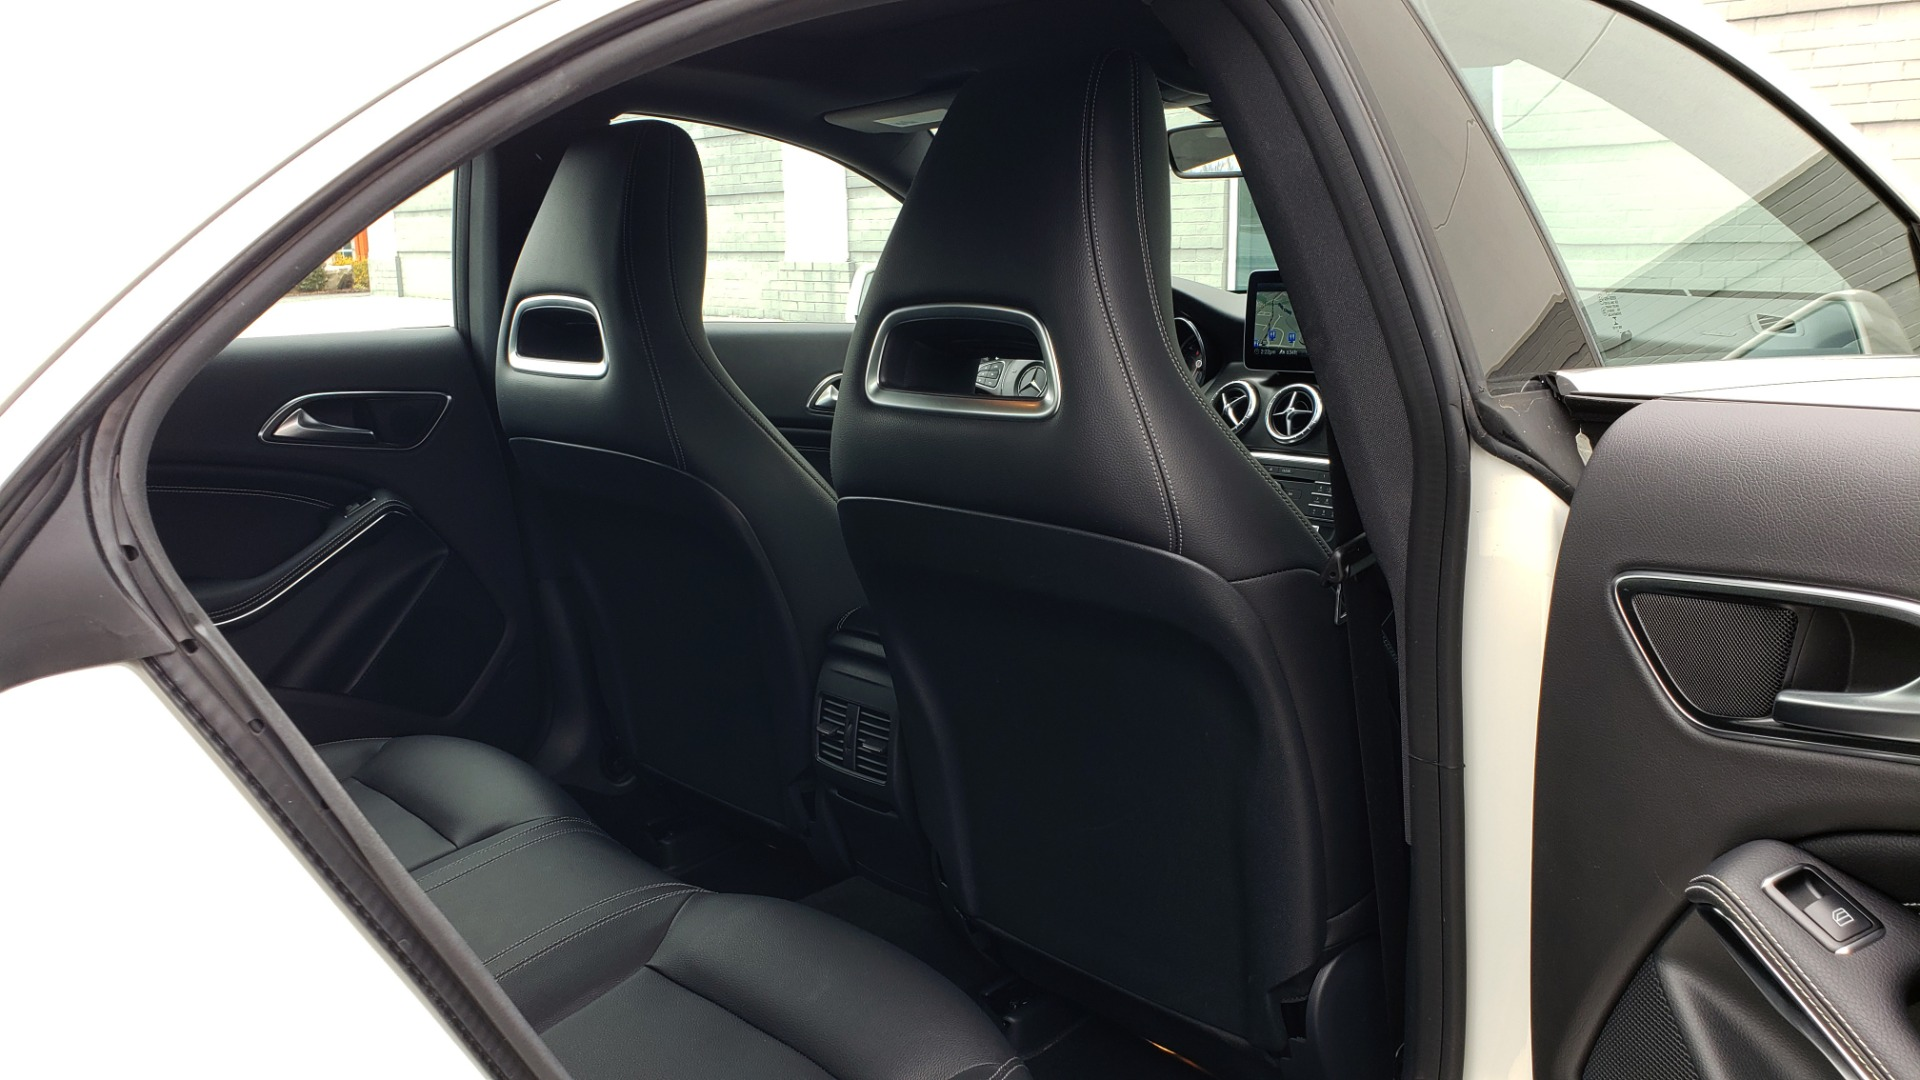 Used 2018 Mercedes-Benz CLA 250 PREMIUM / NAV / PANO-ROOF / APPLE CARPLAY / REARVIEW for sale $23,995 at Formula Imports in Charlotte NC 28227 75